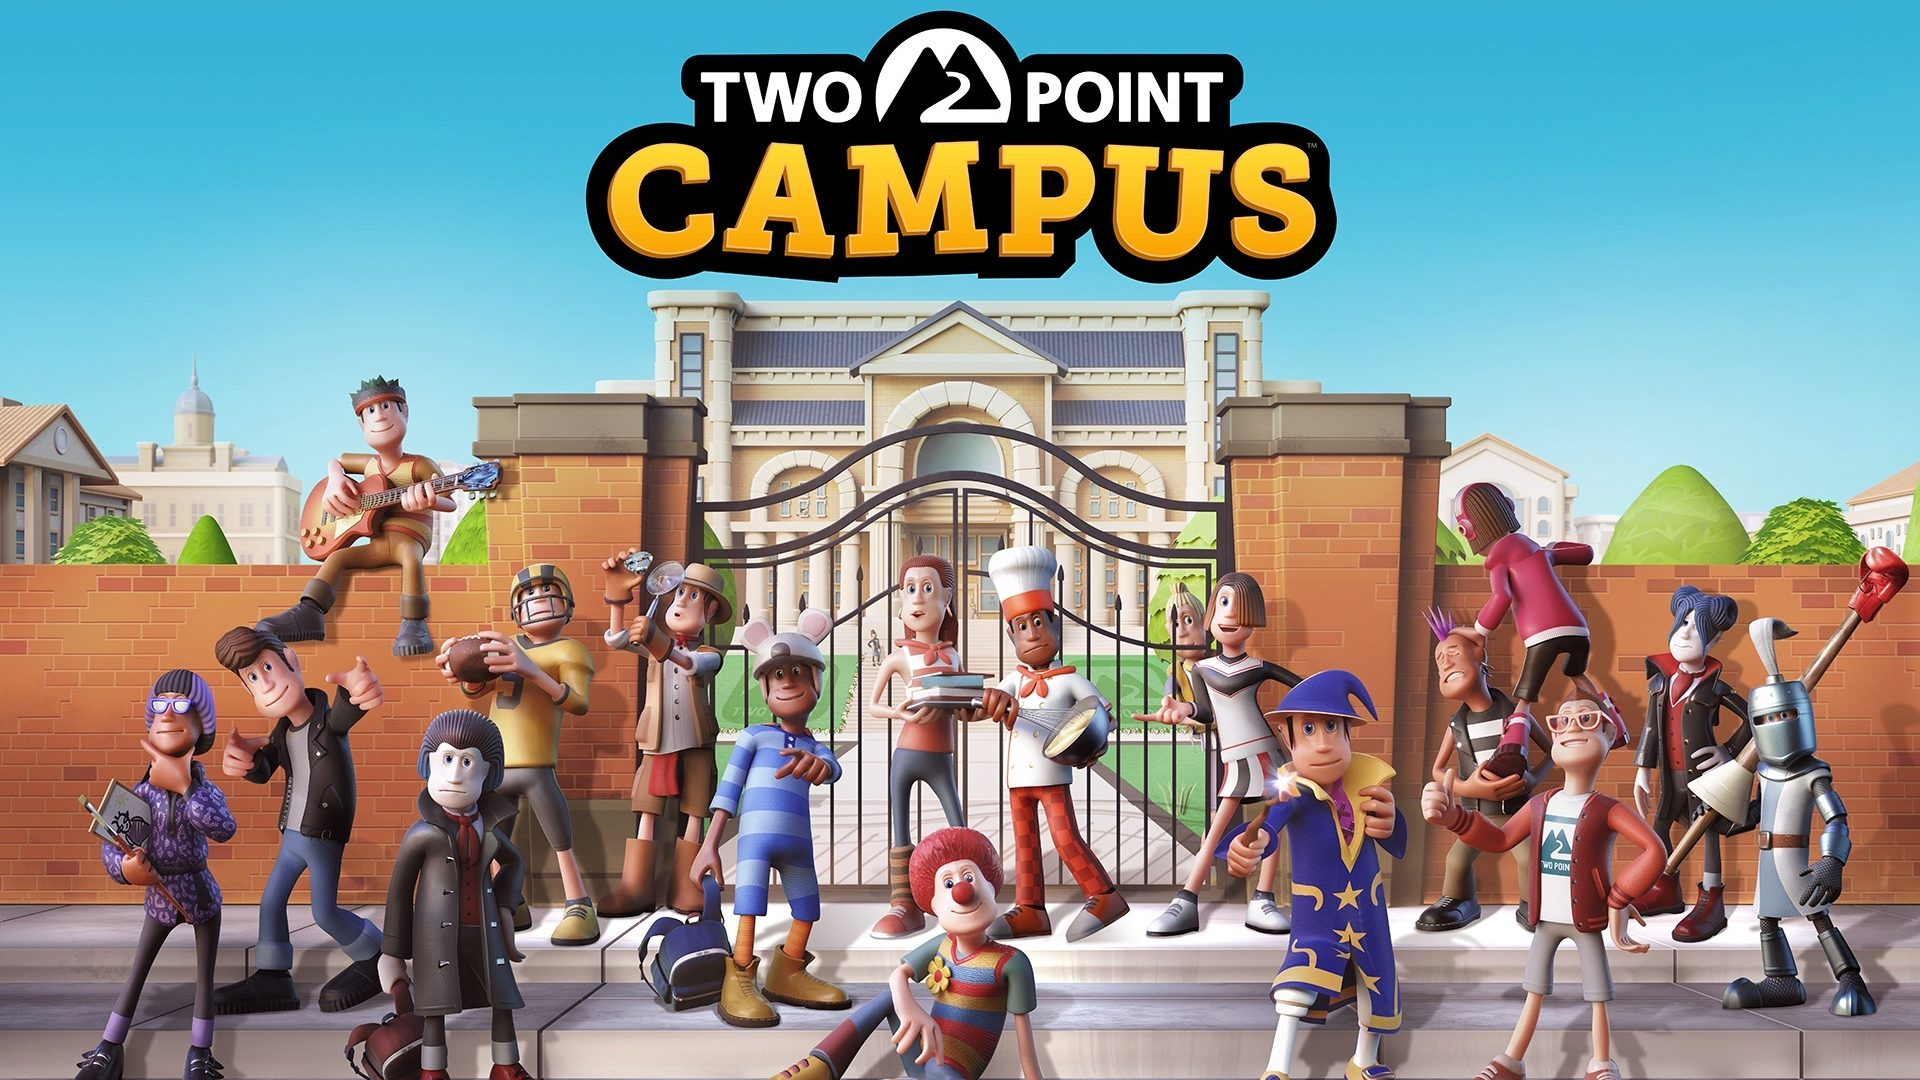 establish-your-university-your-way-in-two-point-campus,-coming-to-ps4-and-ps5